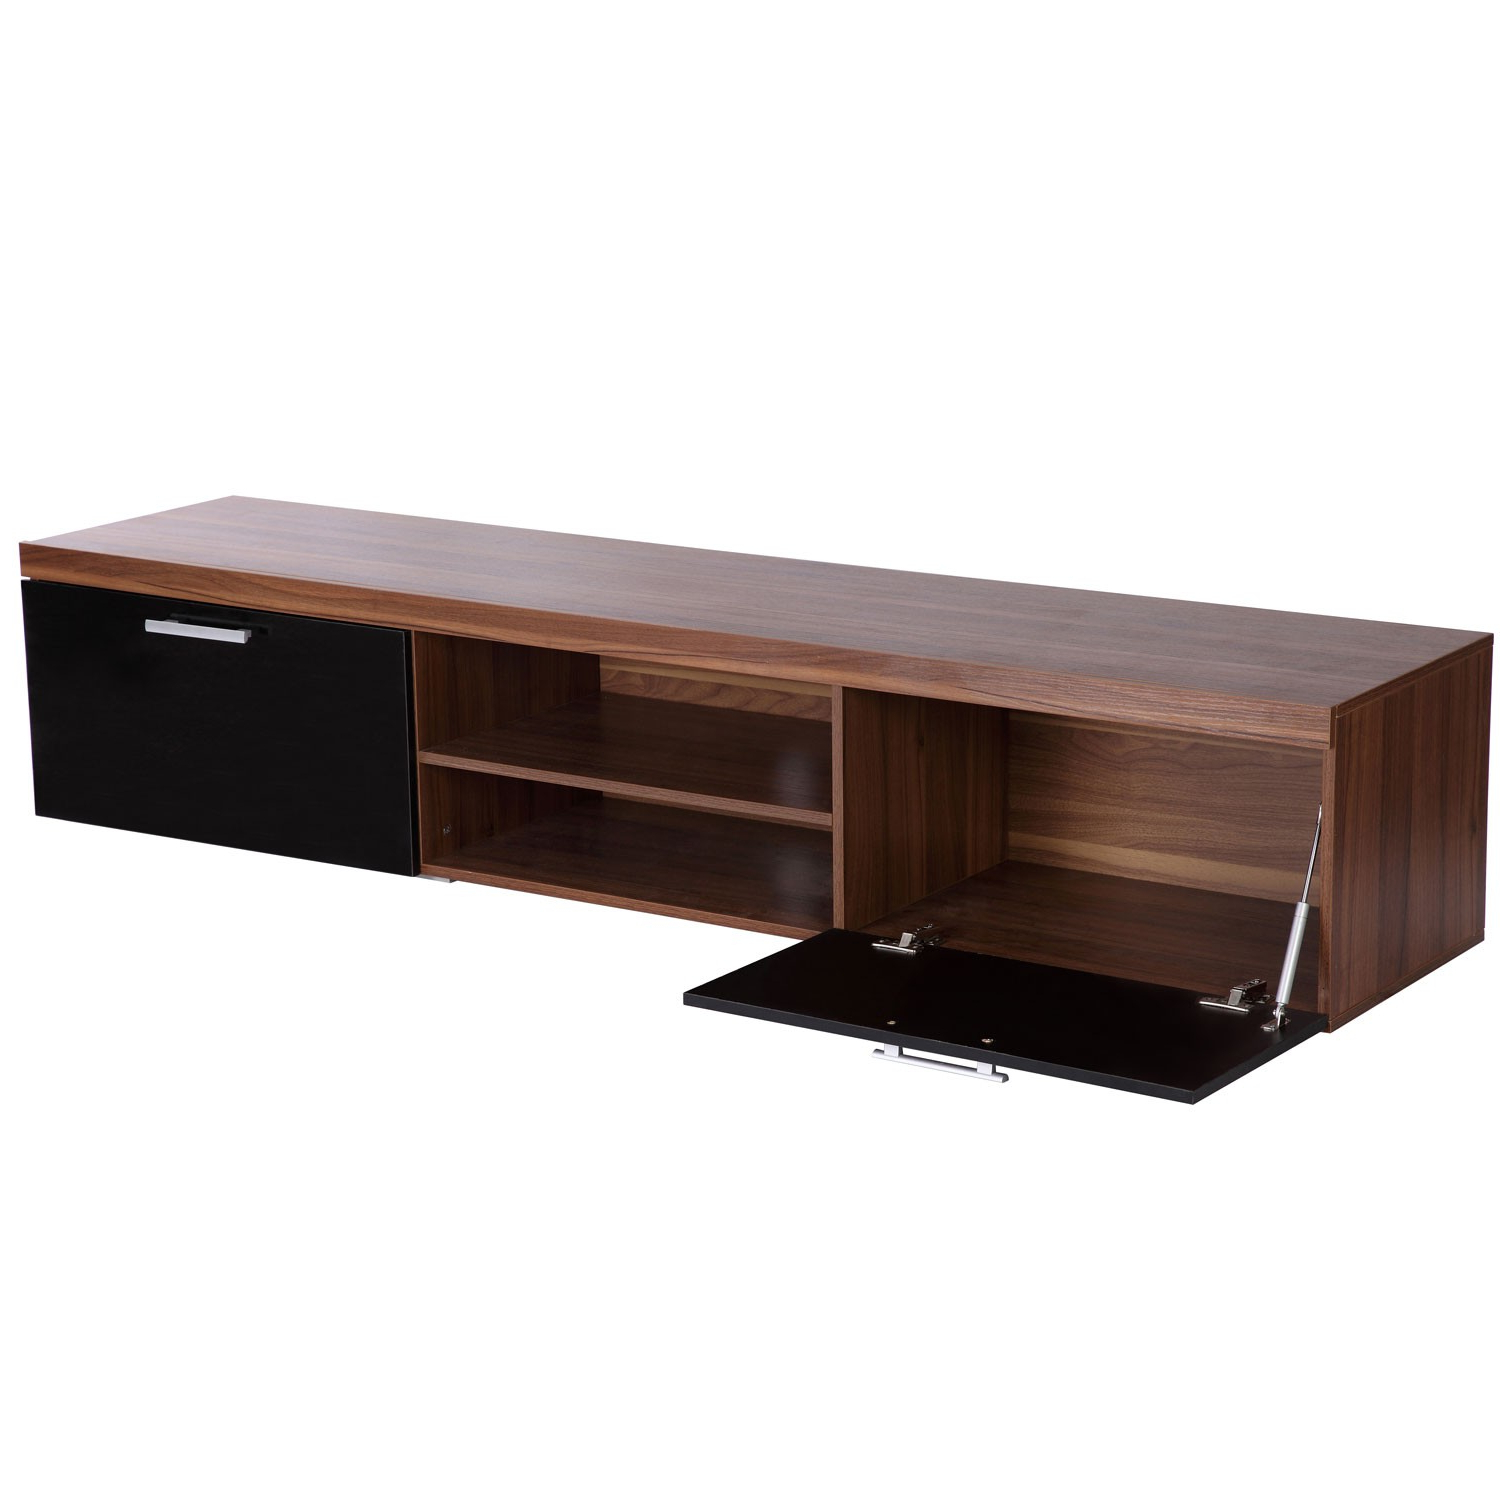 Most Popular Walnut And Black Gloss Tv Units With Regard To Homcom Tv Cabinet Unit, 2 High Gloss Doors Black/walnut (View 18 of 20)